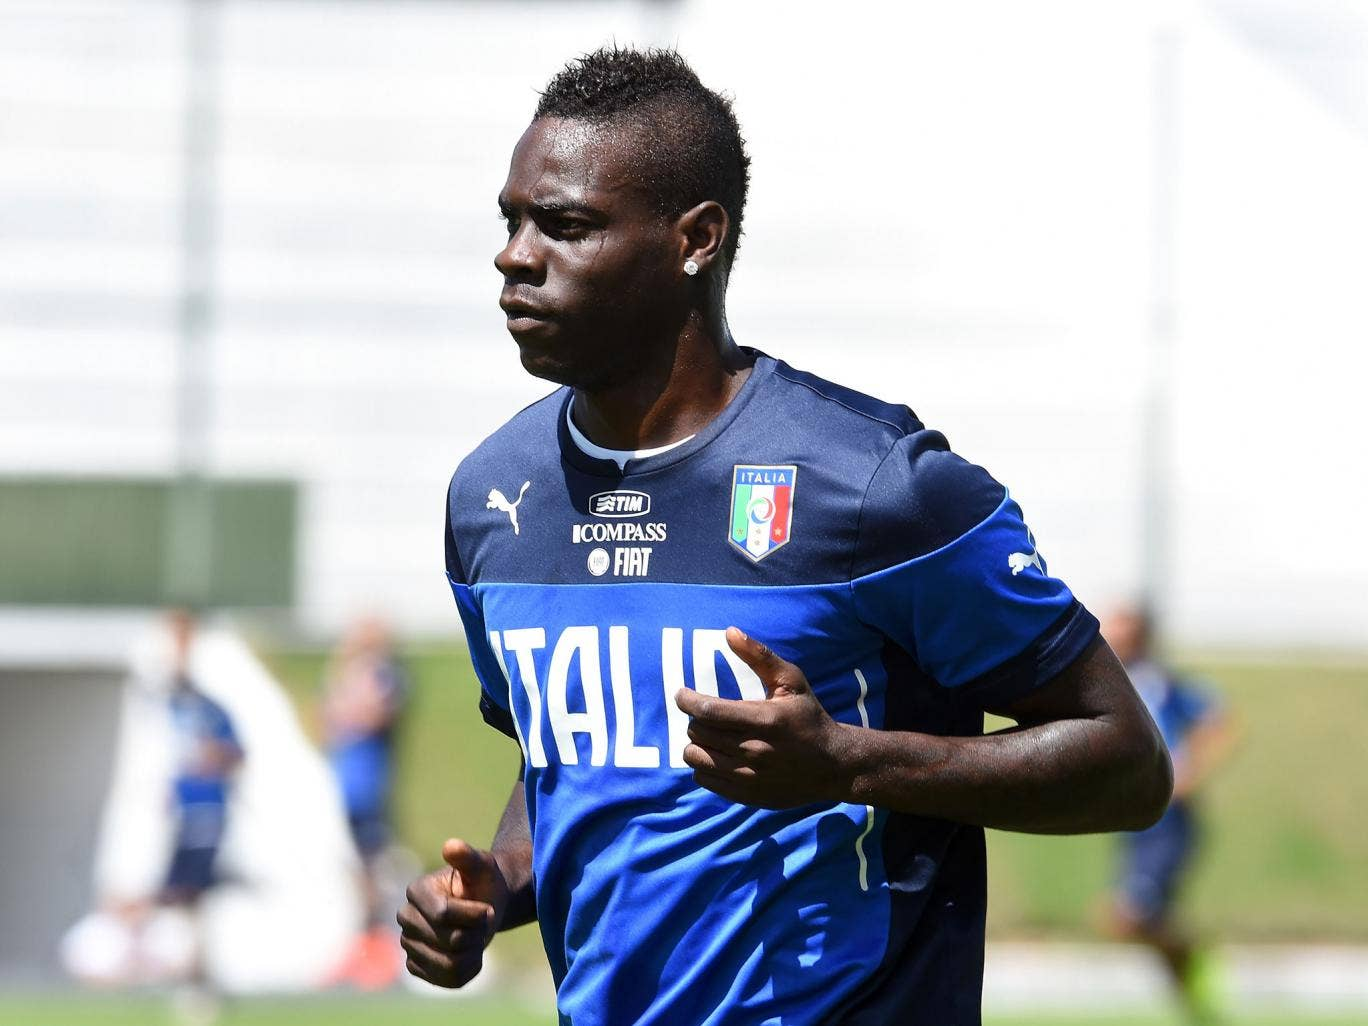 AC Milan are willing to listen to offers of around £30m for Arsenal target Mario Balotelli